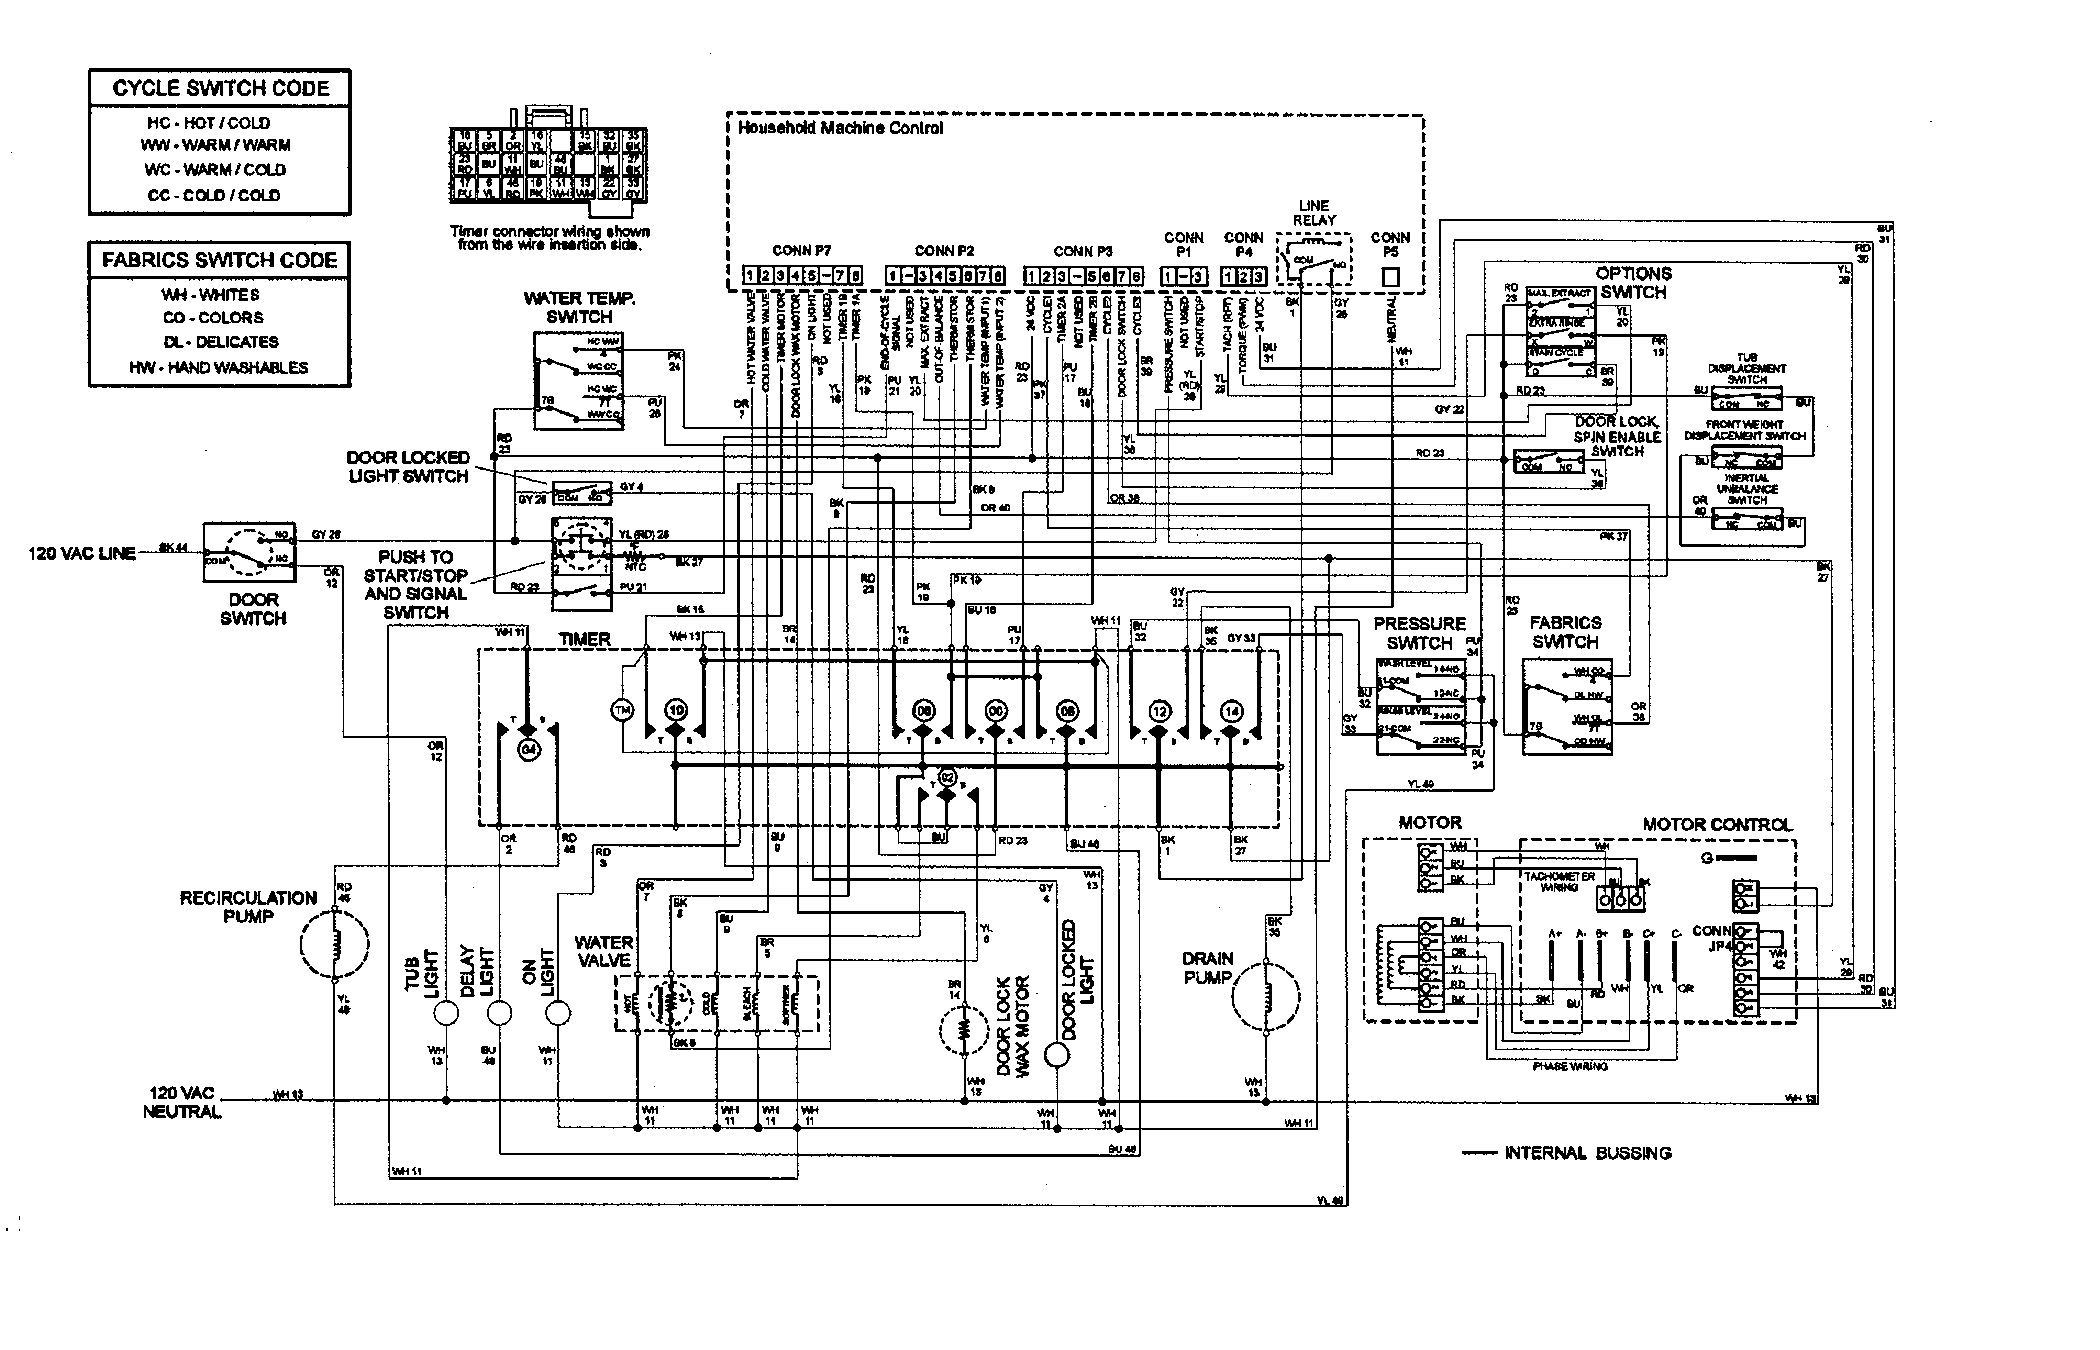 maytag washer wiring diagram Collection-M 8-g